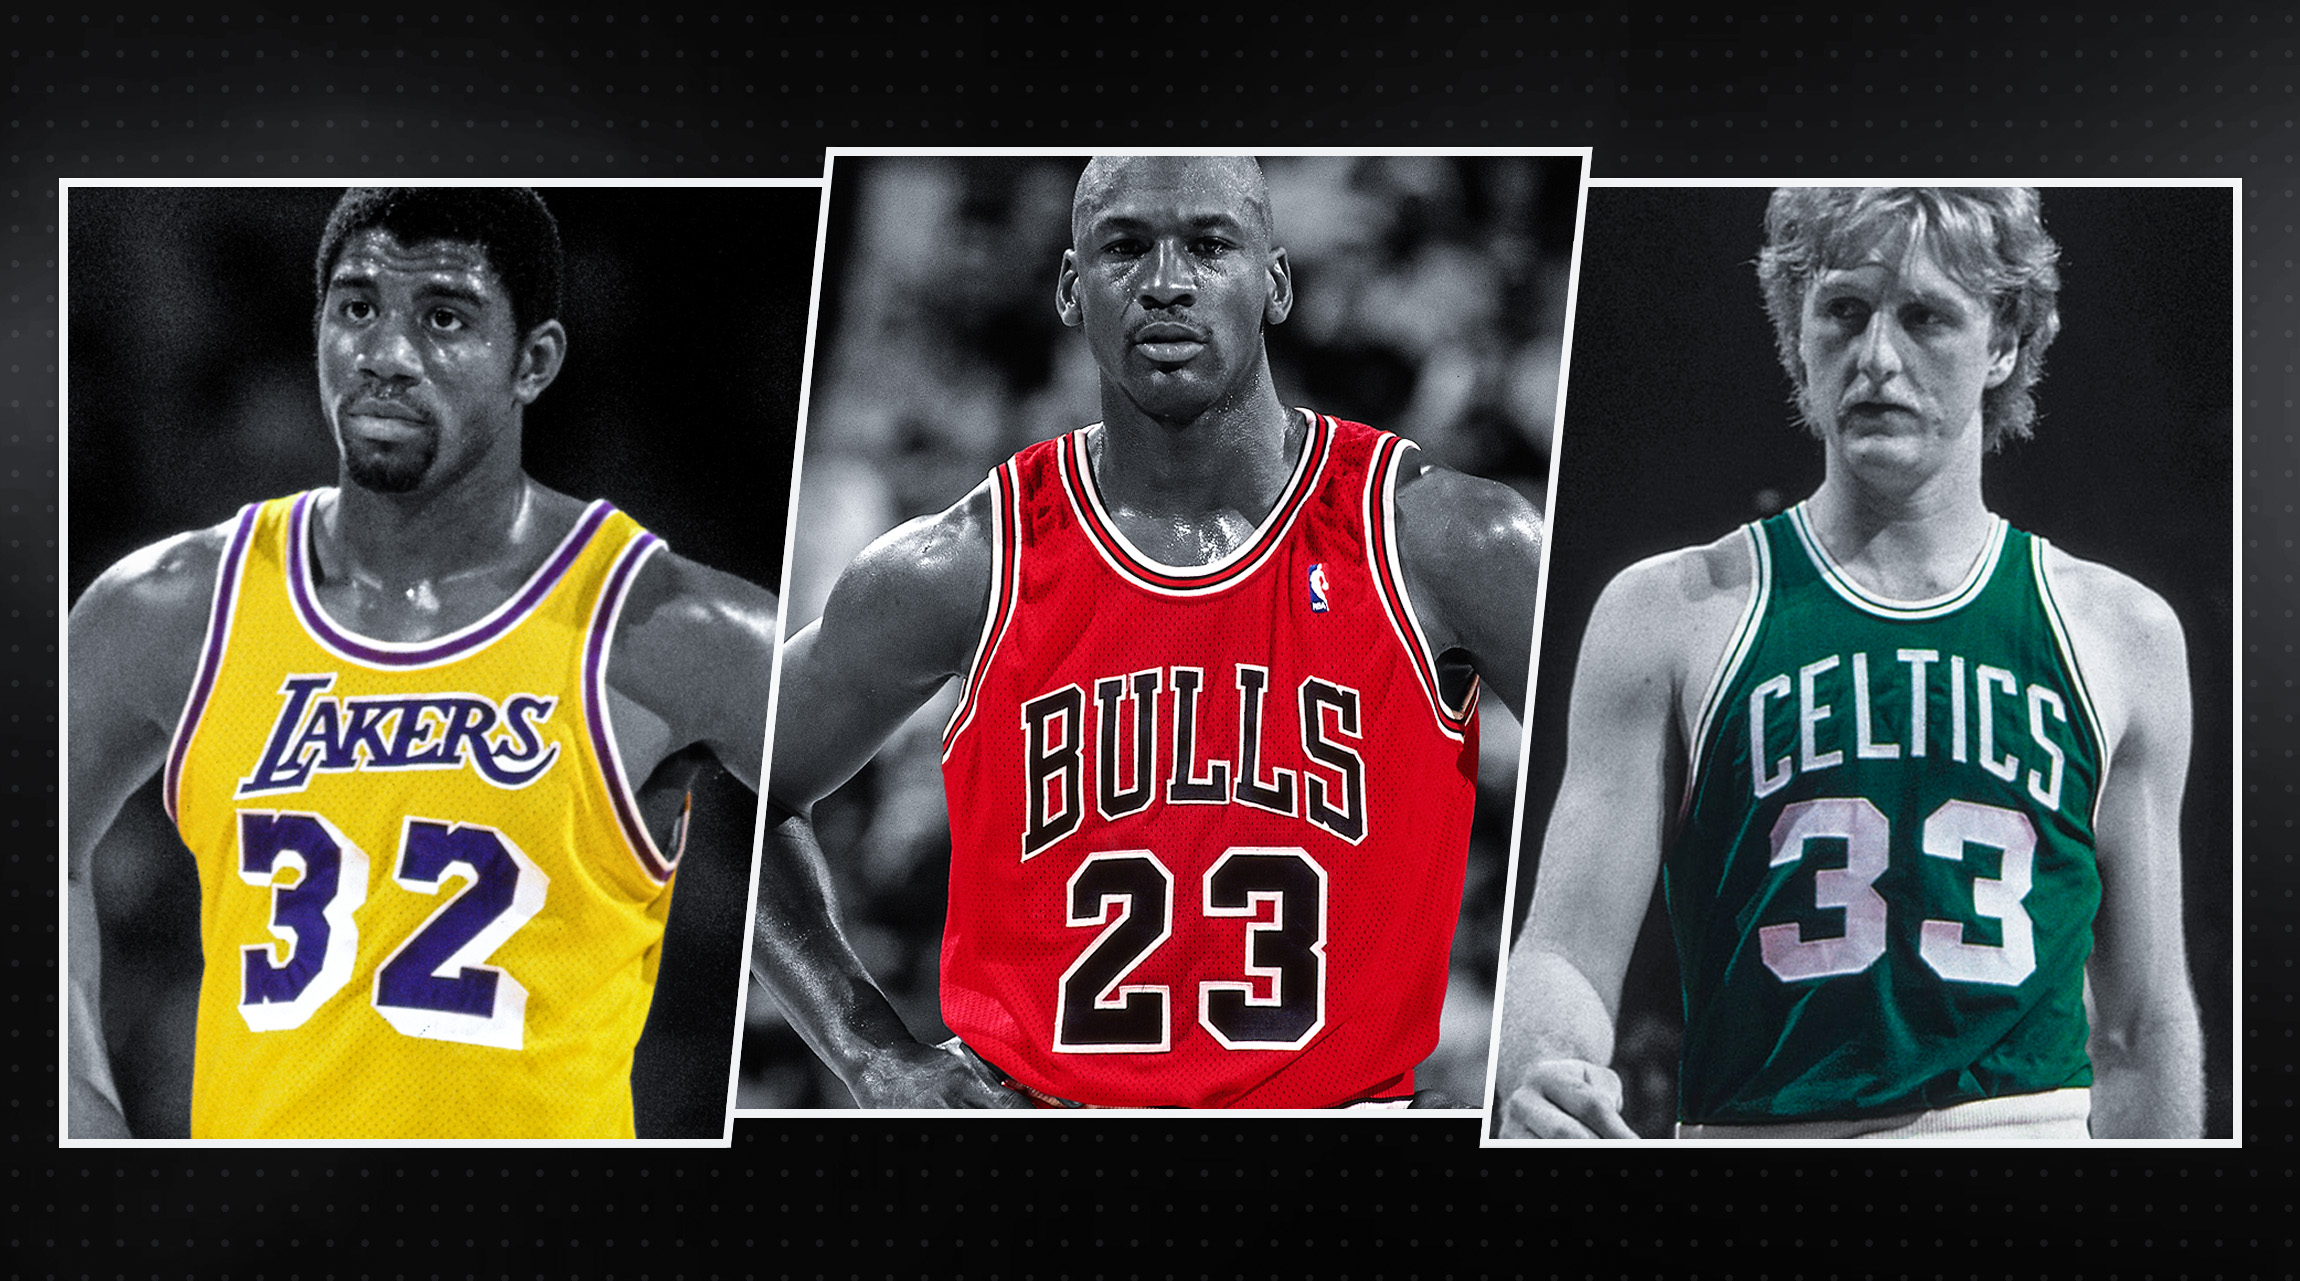 45764a08dcb NBA jerseys  Ranking the 30 greatest in history